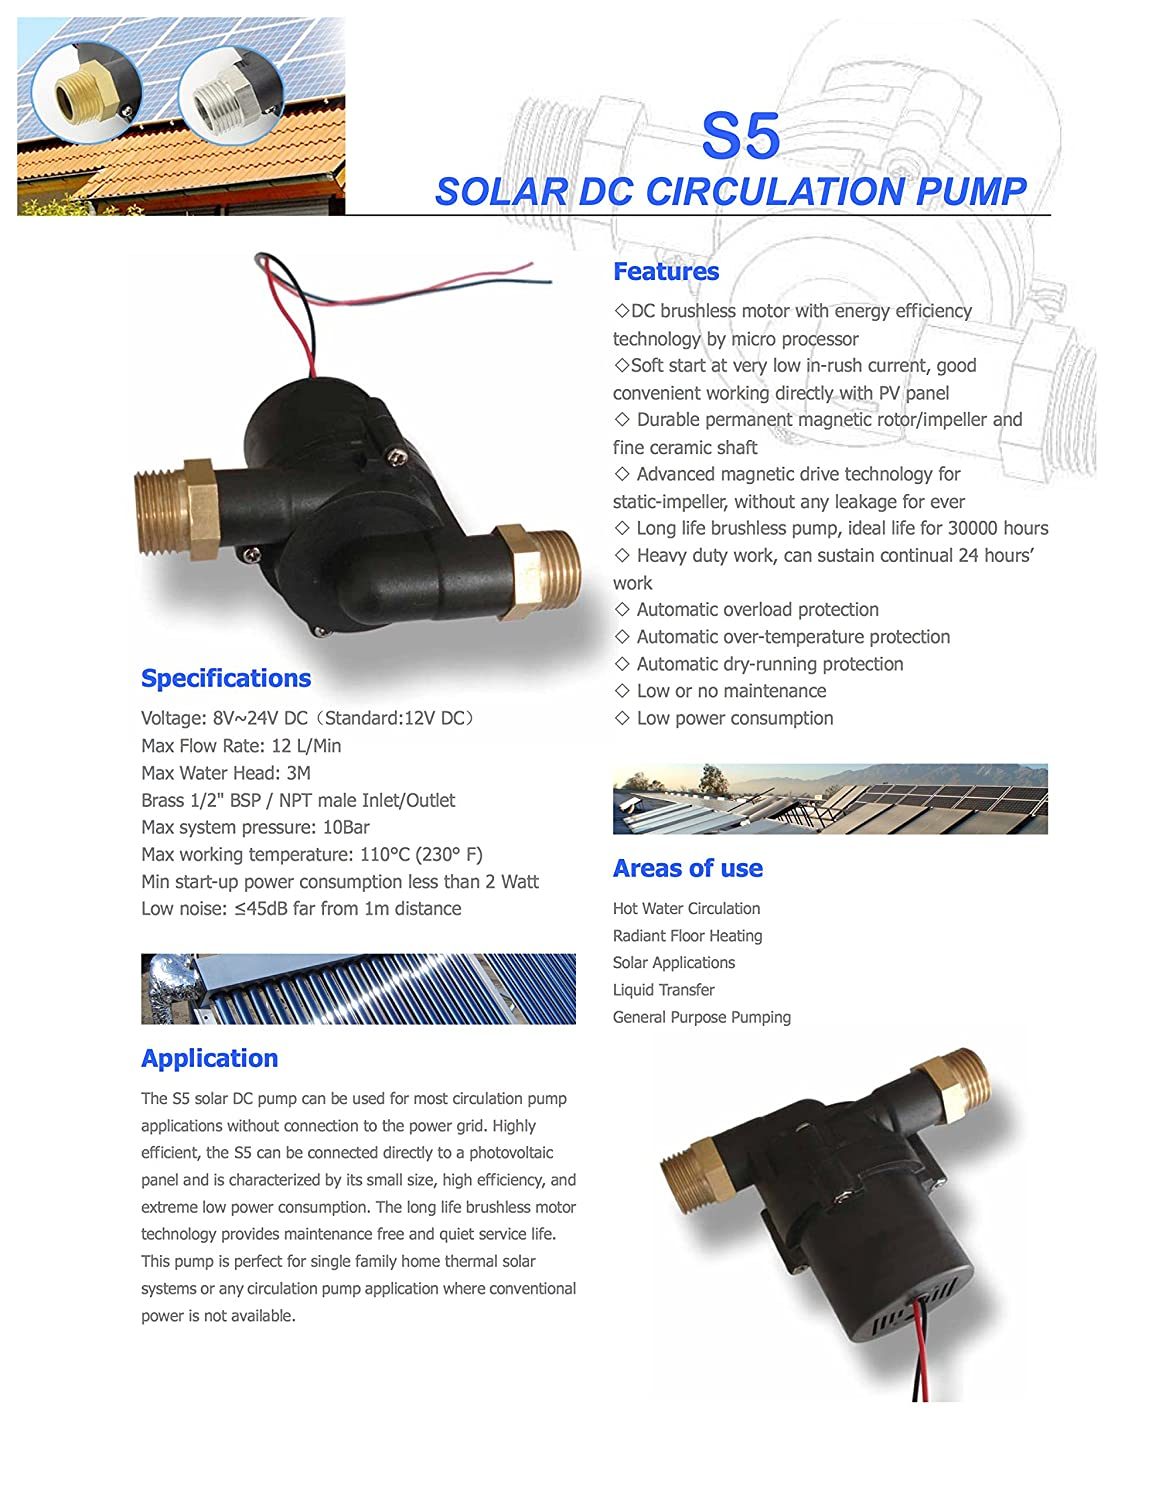 12553963835 COM S5-15PV-Cu - 3 GPM - Food Grade - 12V Solar Hot Water Pump - Can be run  by a 15W solar panel  Home Improvement